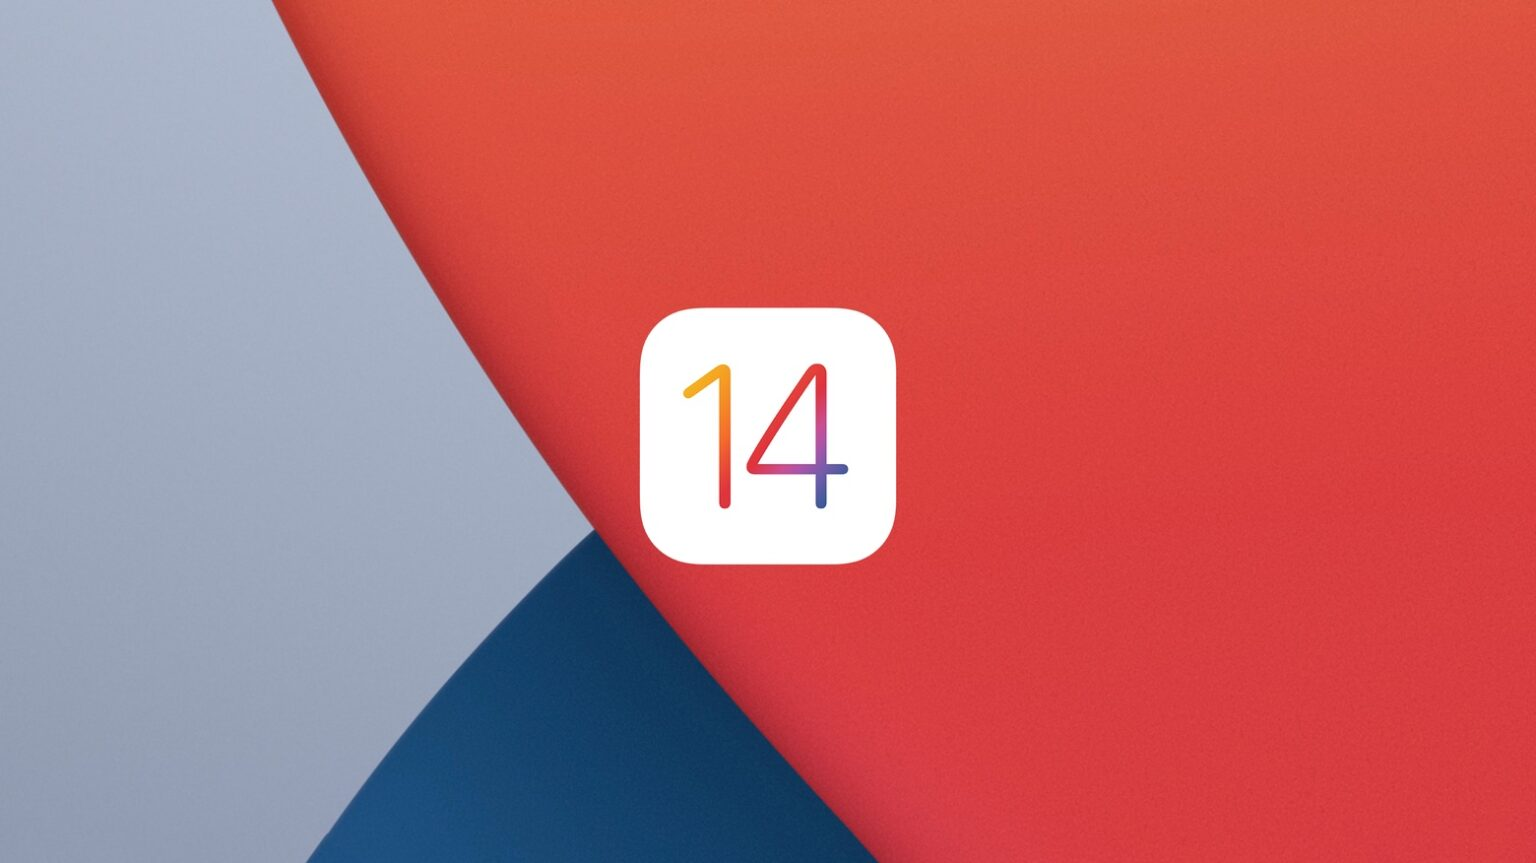 iOS 14 adoption. It's a good thing.